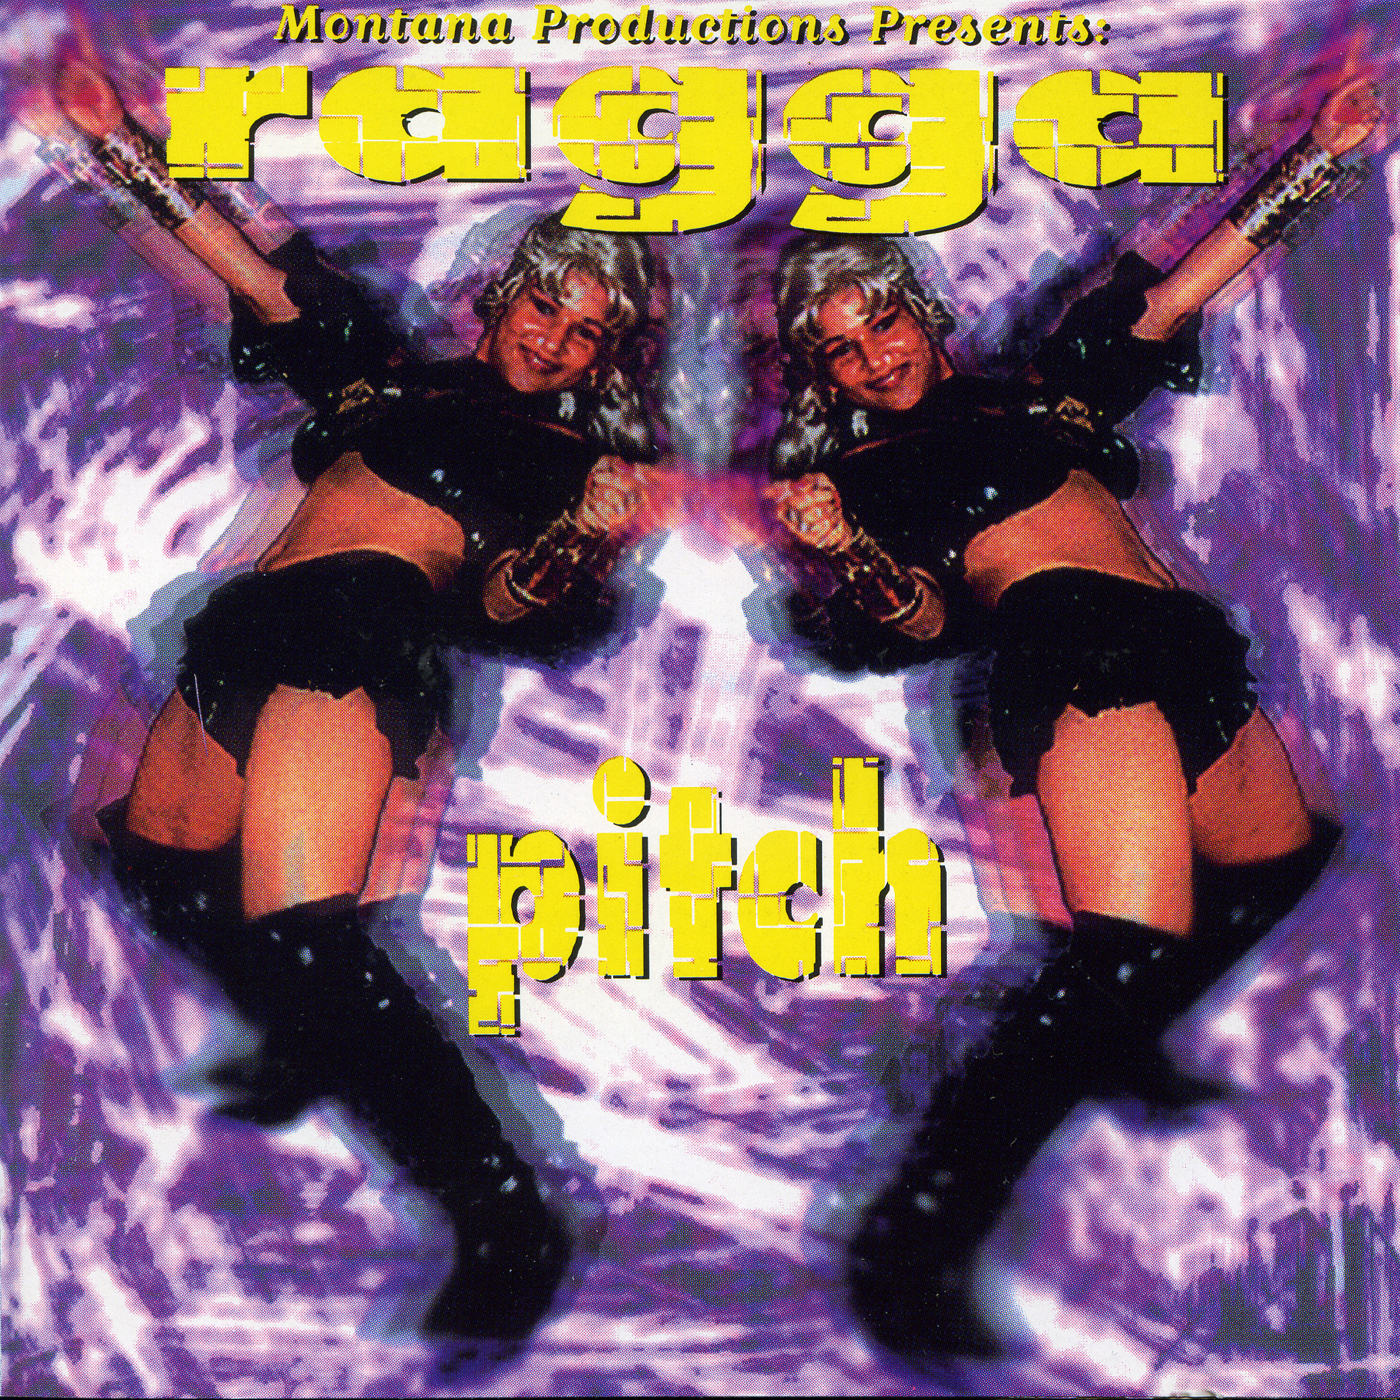 Ragga Pitch